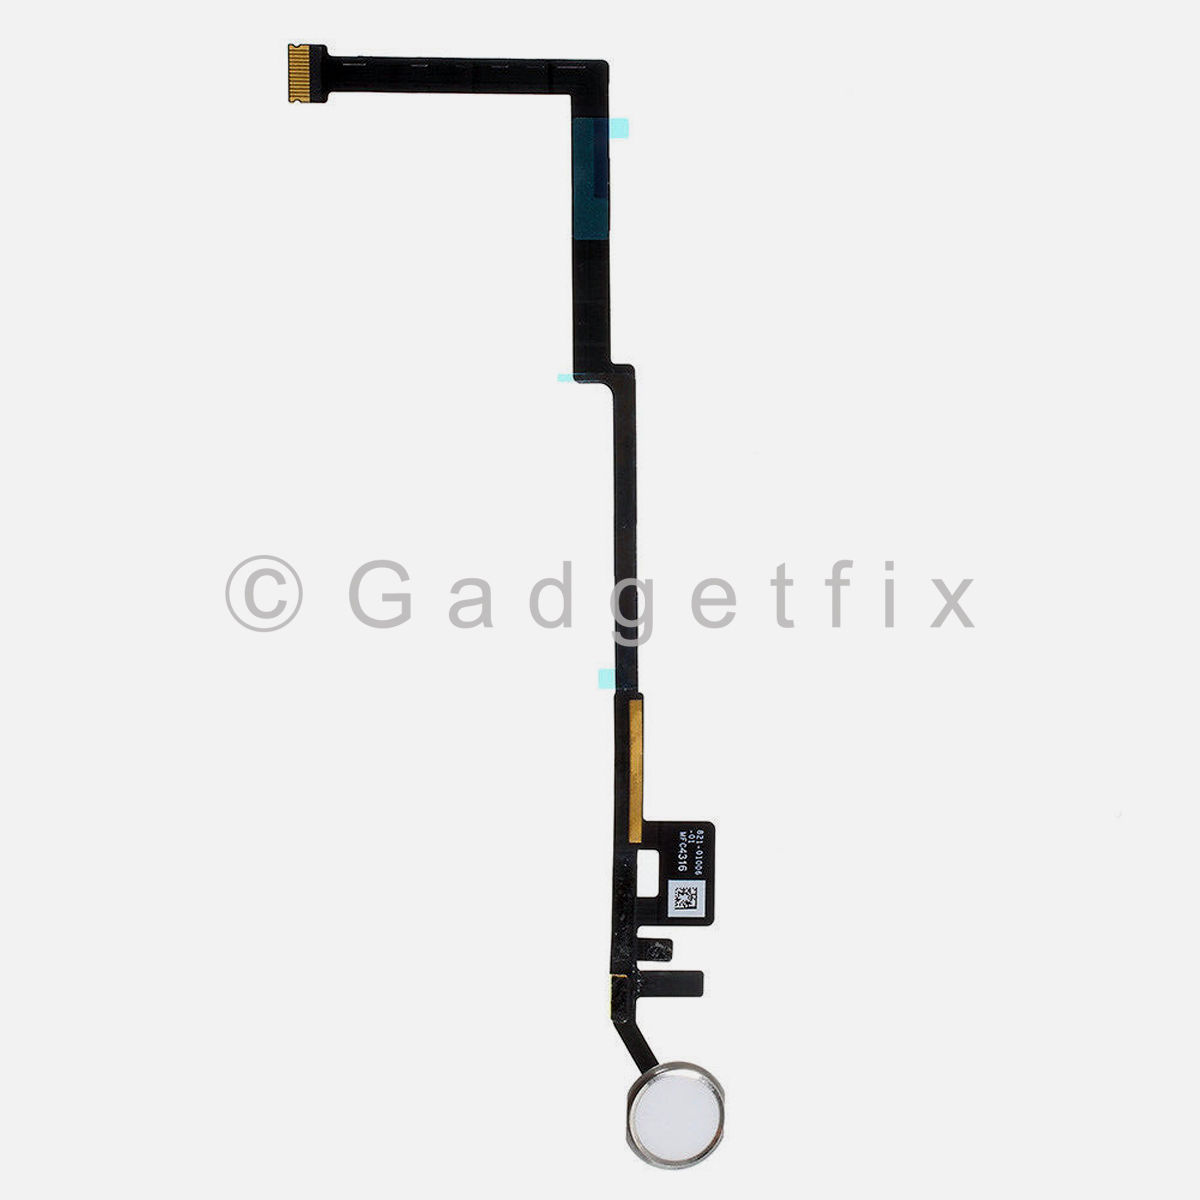 White | Silver Home Button Key Flex Cable Connector For iPad 5th Gen 2017 A1822 A1823